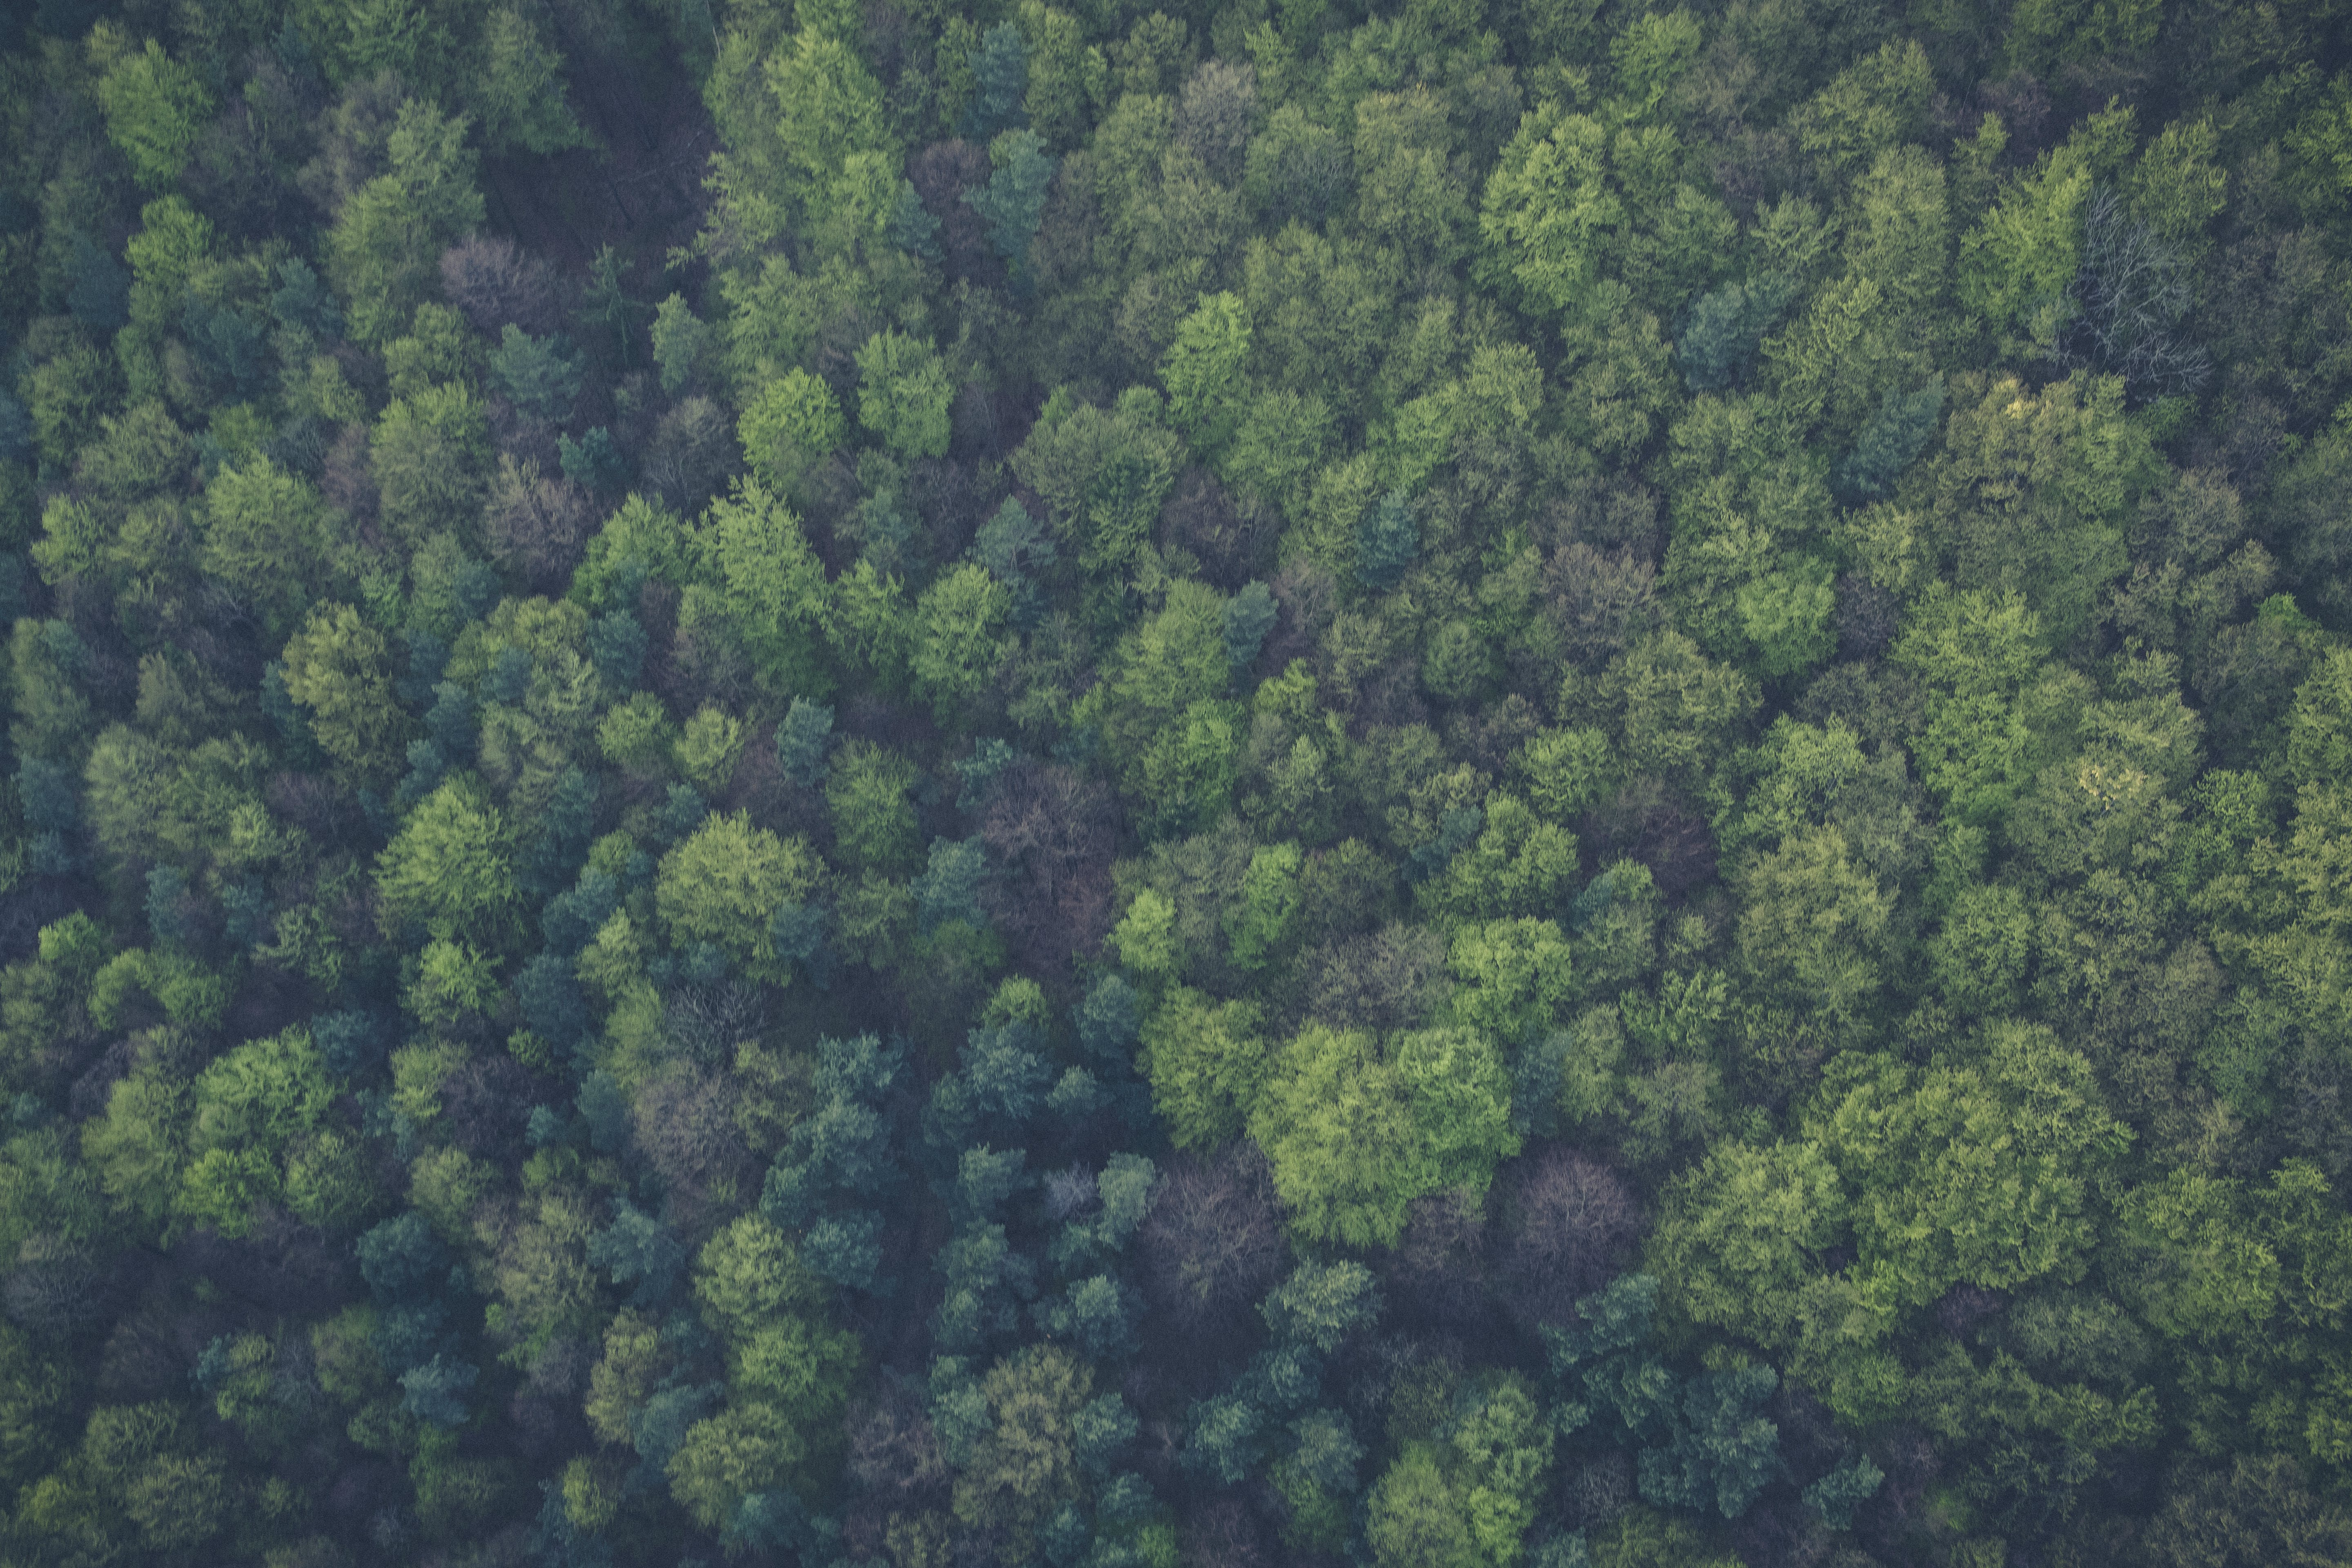 Free stock photo of bird's eye view, nature, forest, trees